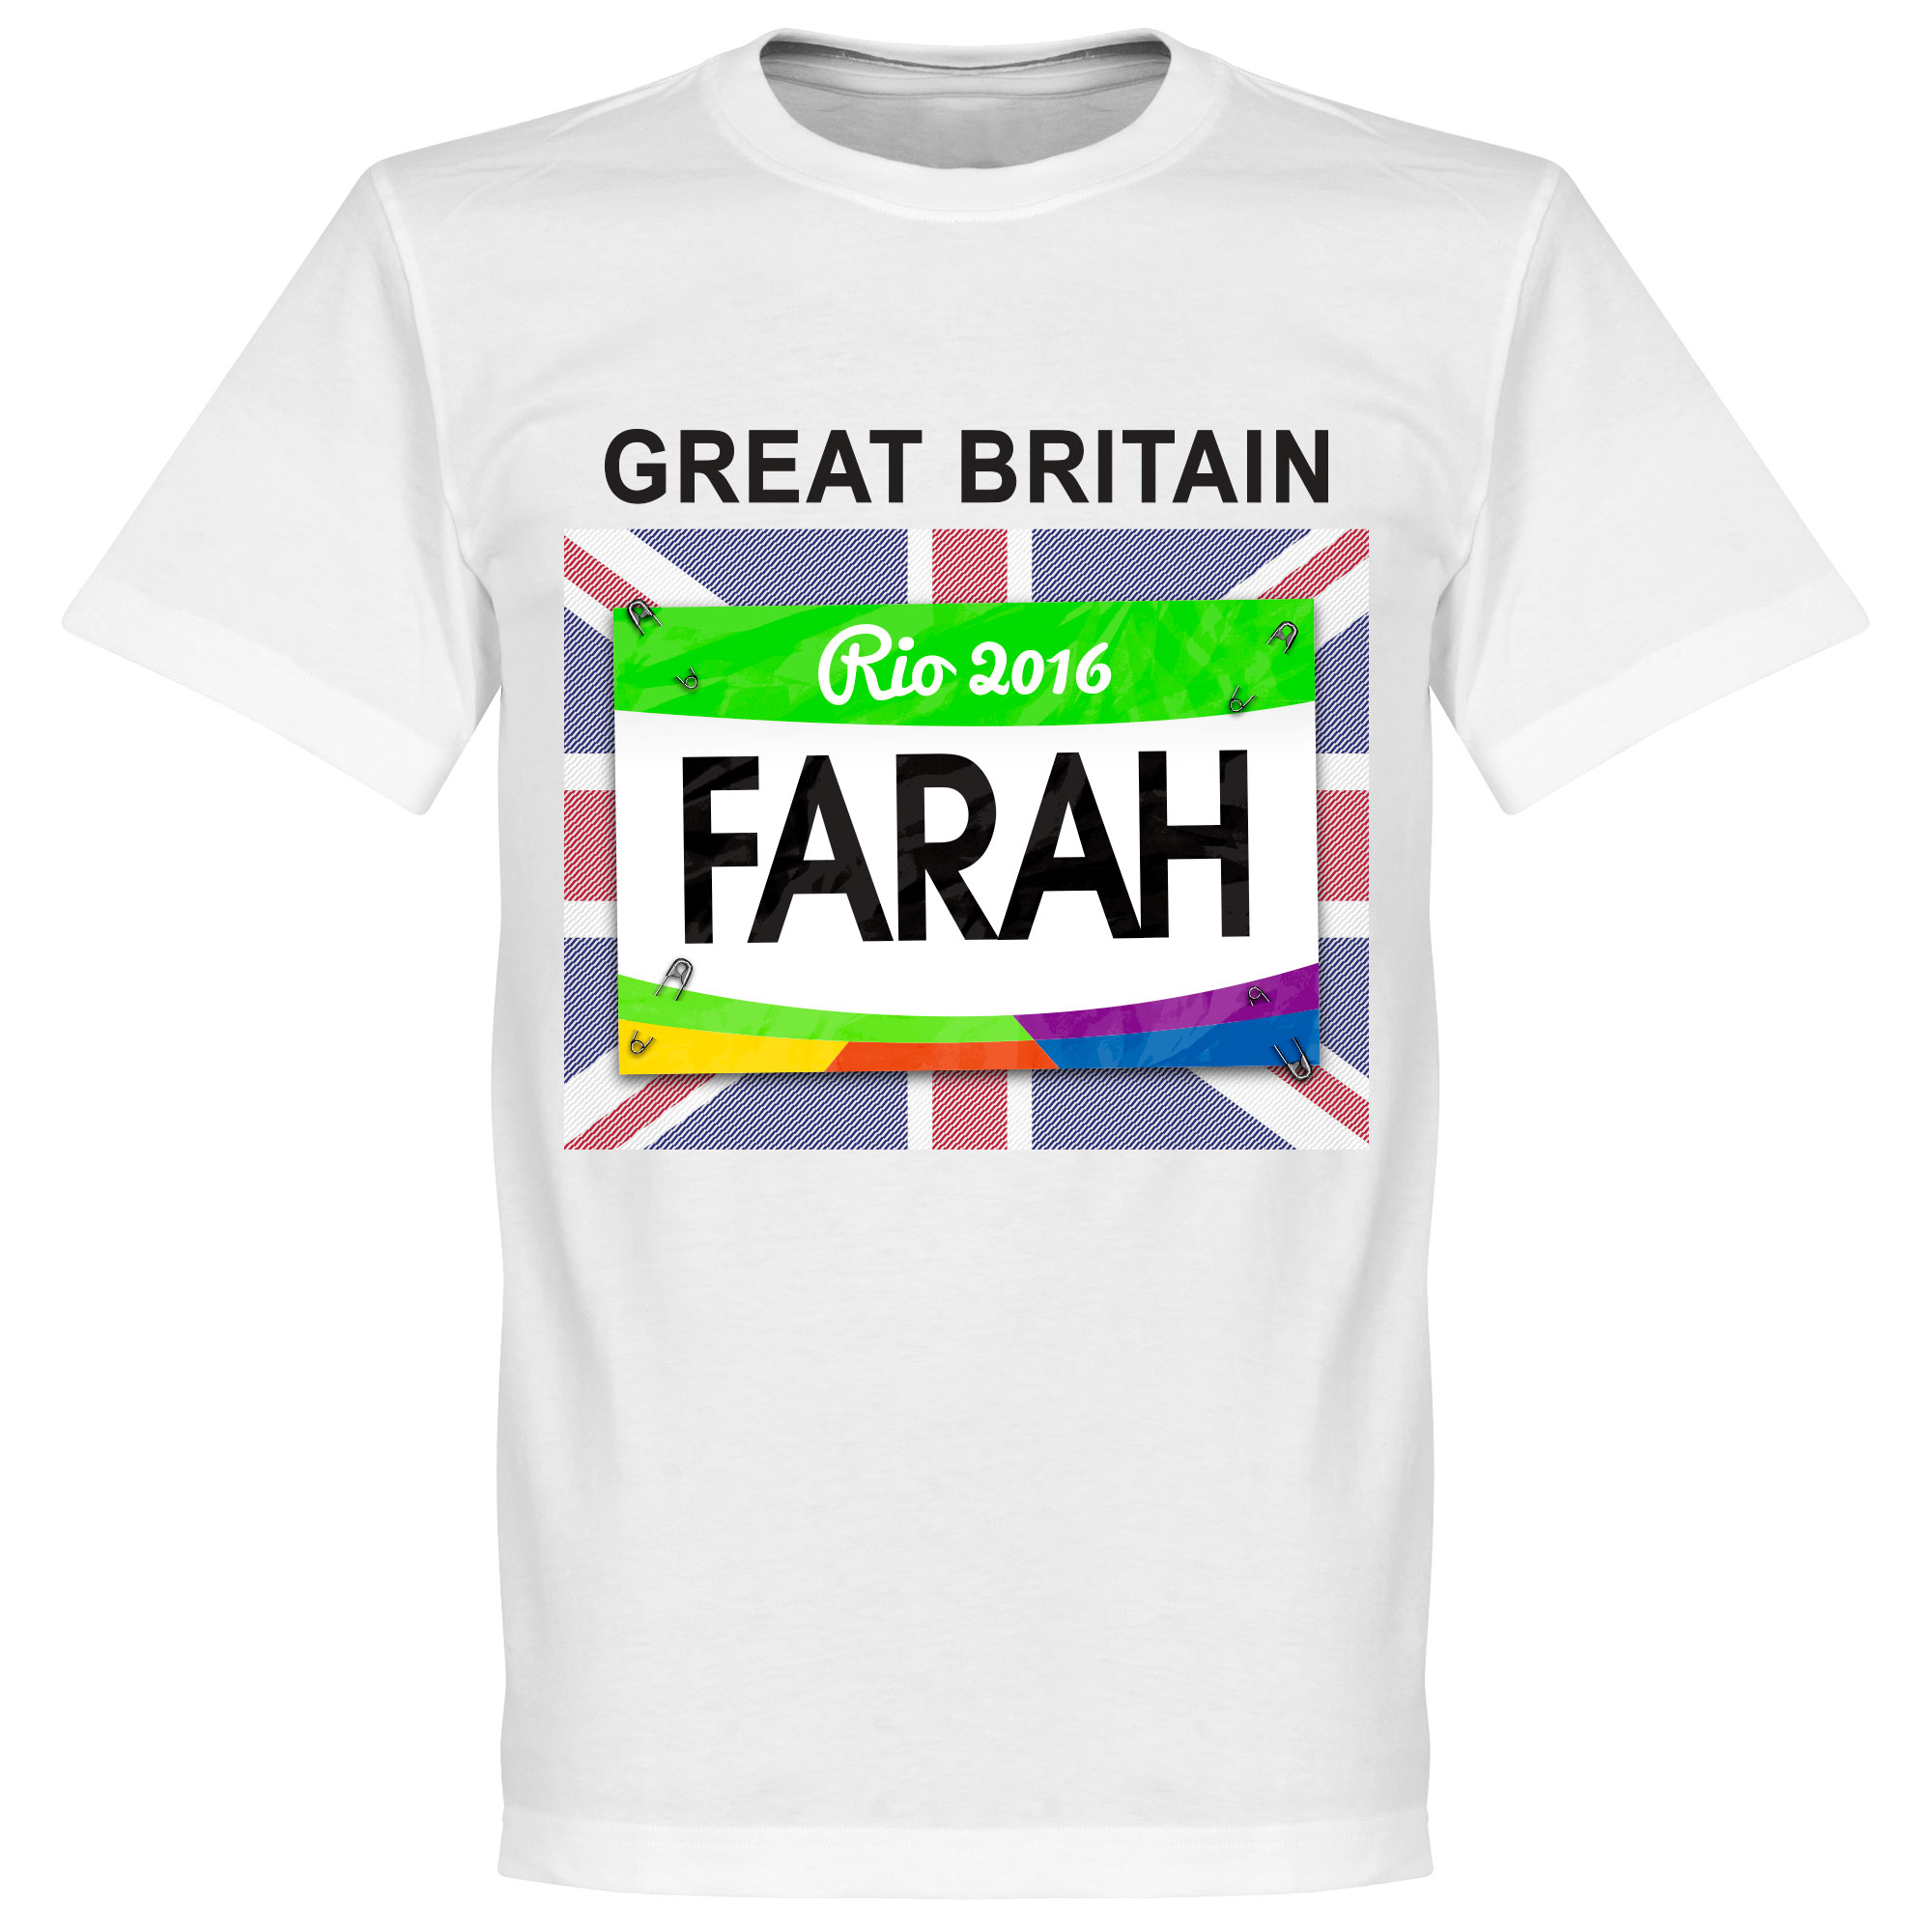 Farah Team GB Tee - White - XL